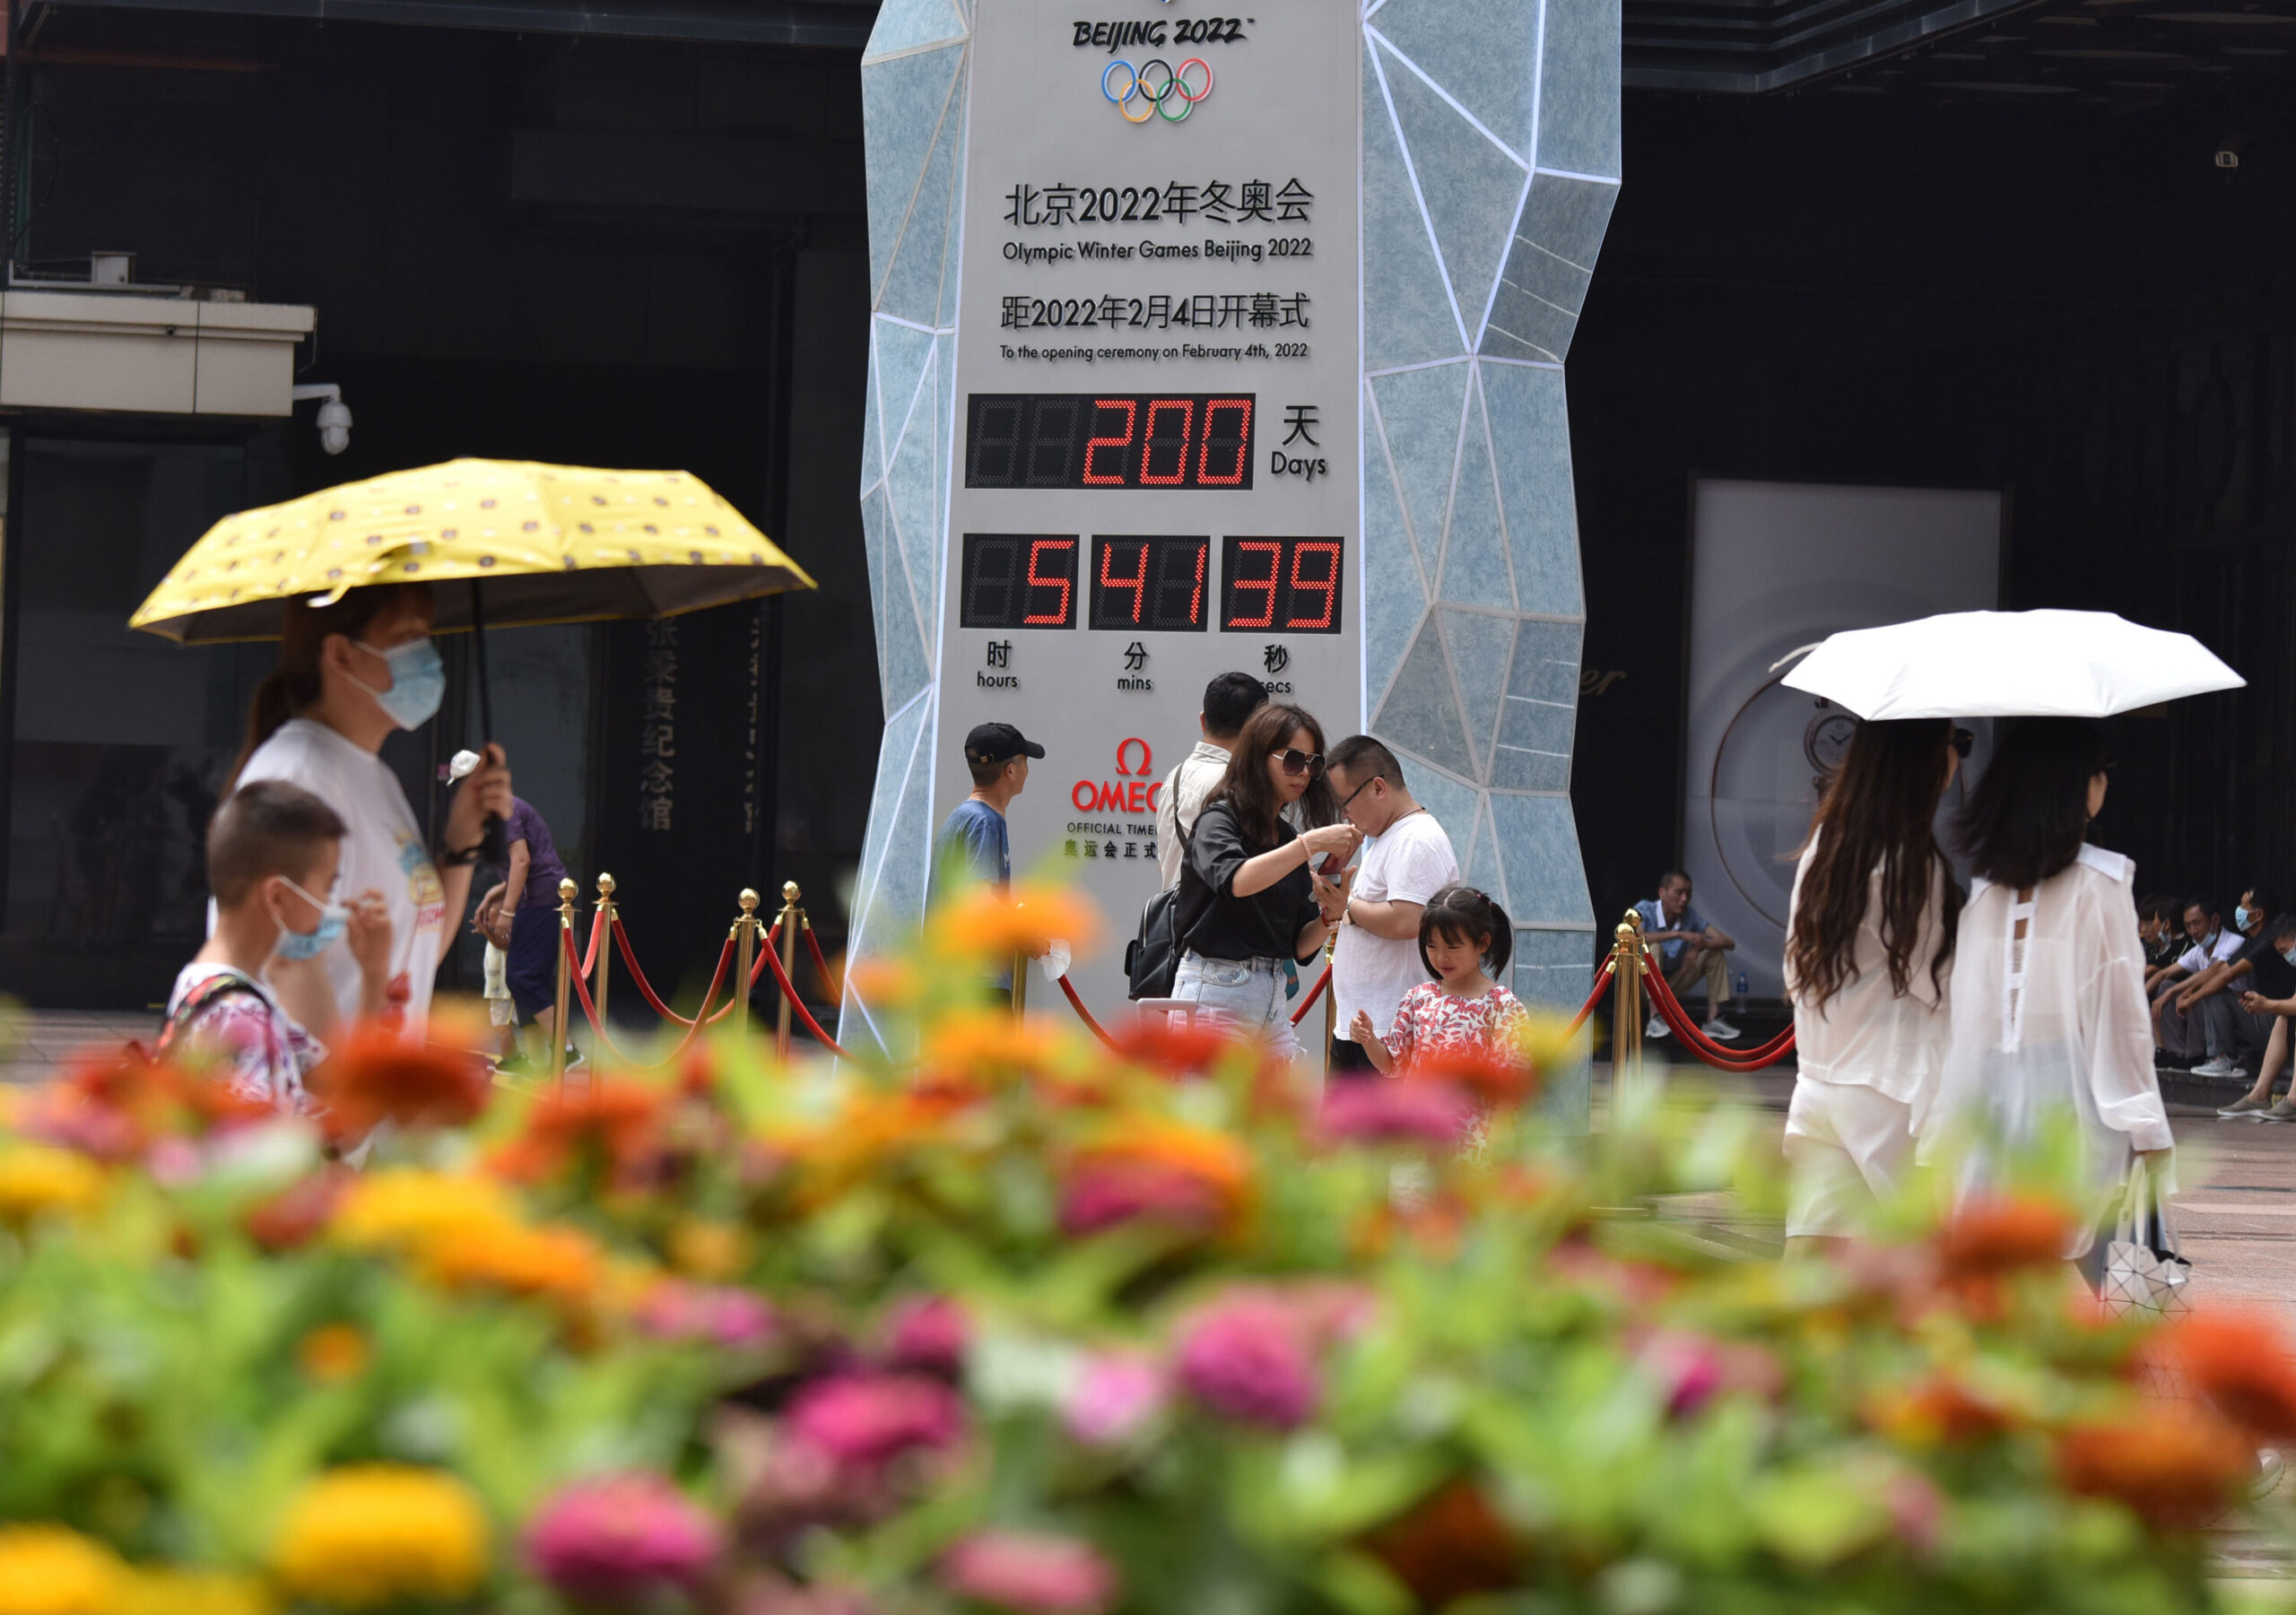 <i>Sheldon Cooper/SOPA Images/LightRocket/Getty Images</i><br/>People wearing face masks walk past the countdown clock showing 200 days to the 2022 Olympic Winter Games.